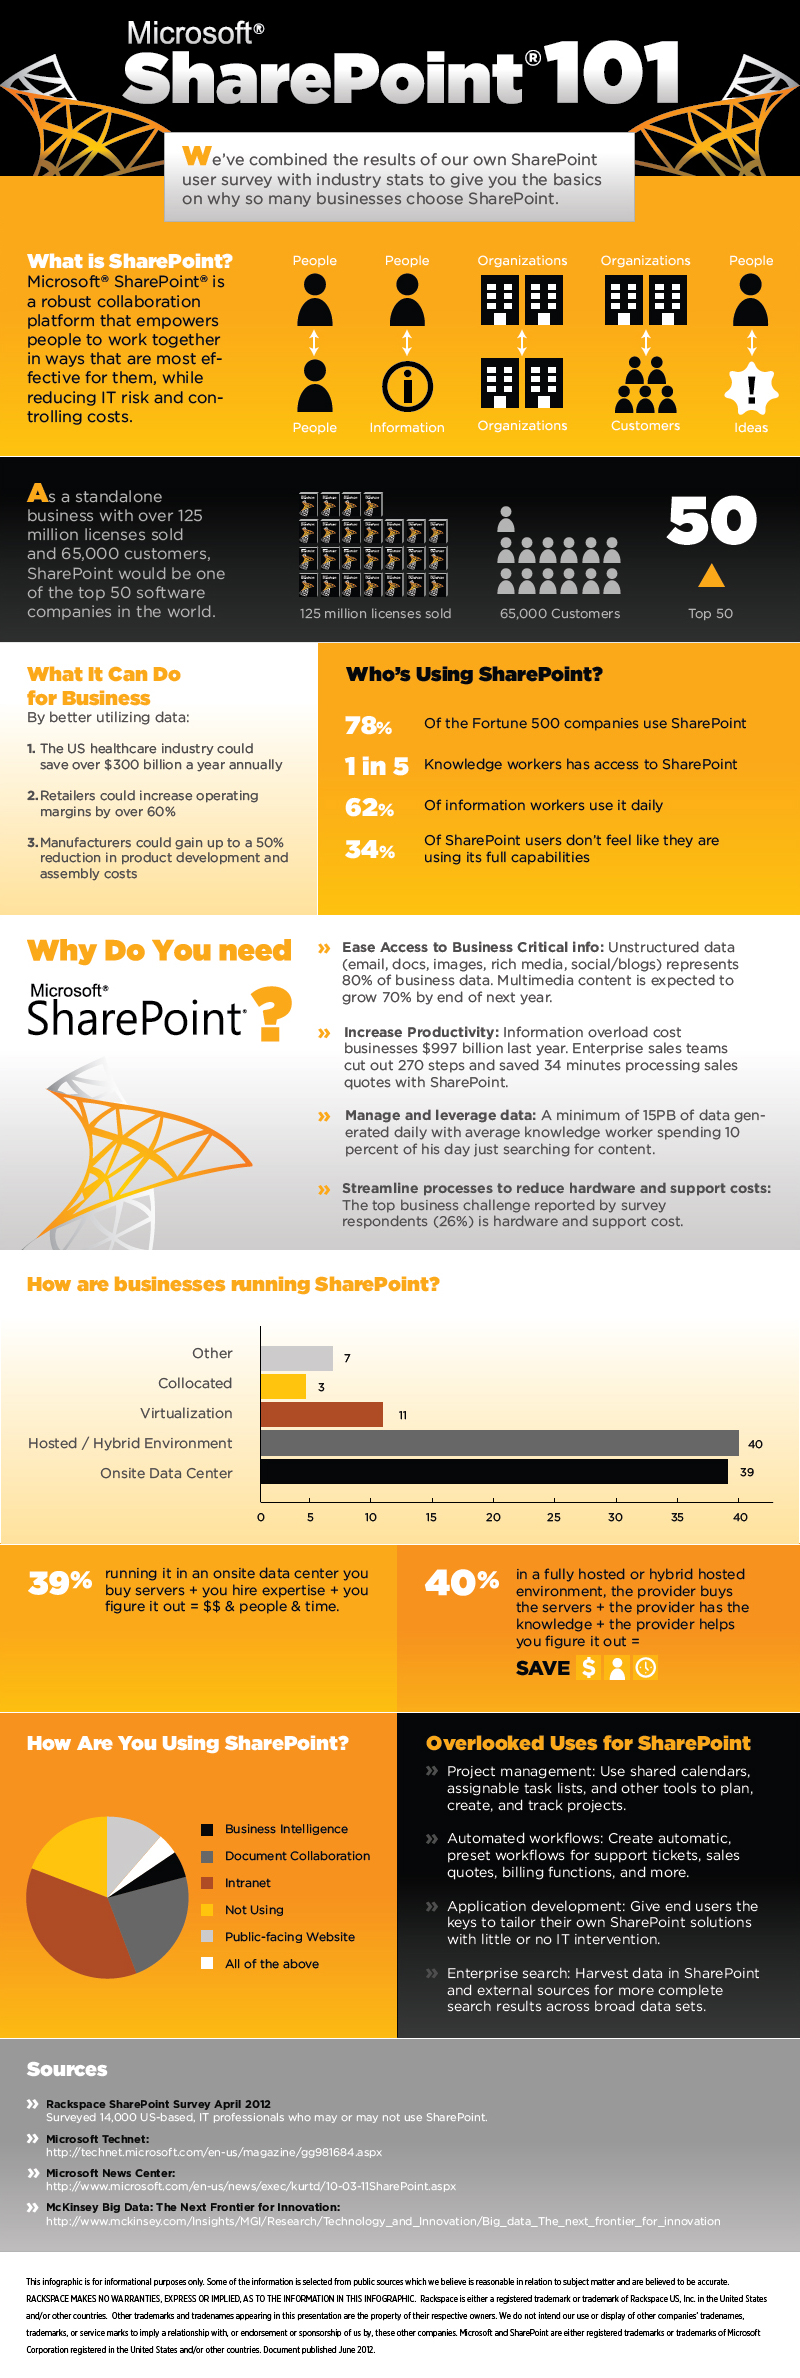 Rackspace® — Some Important Points About SharePoint [Infographic]